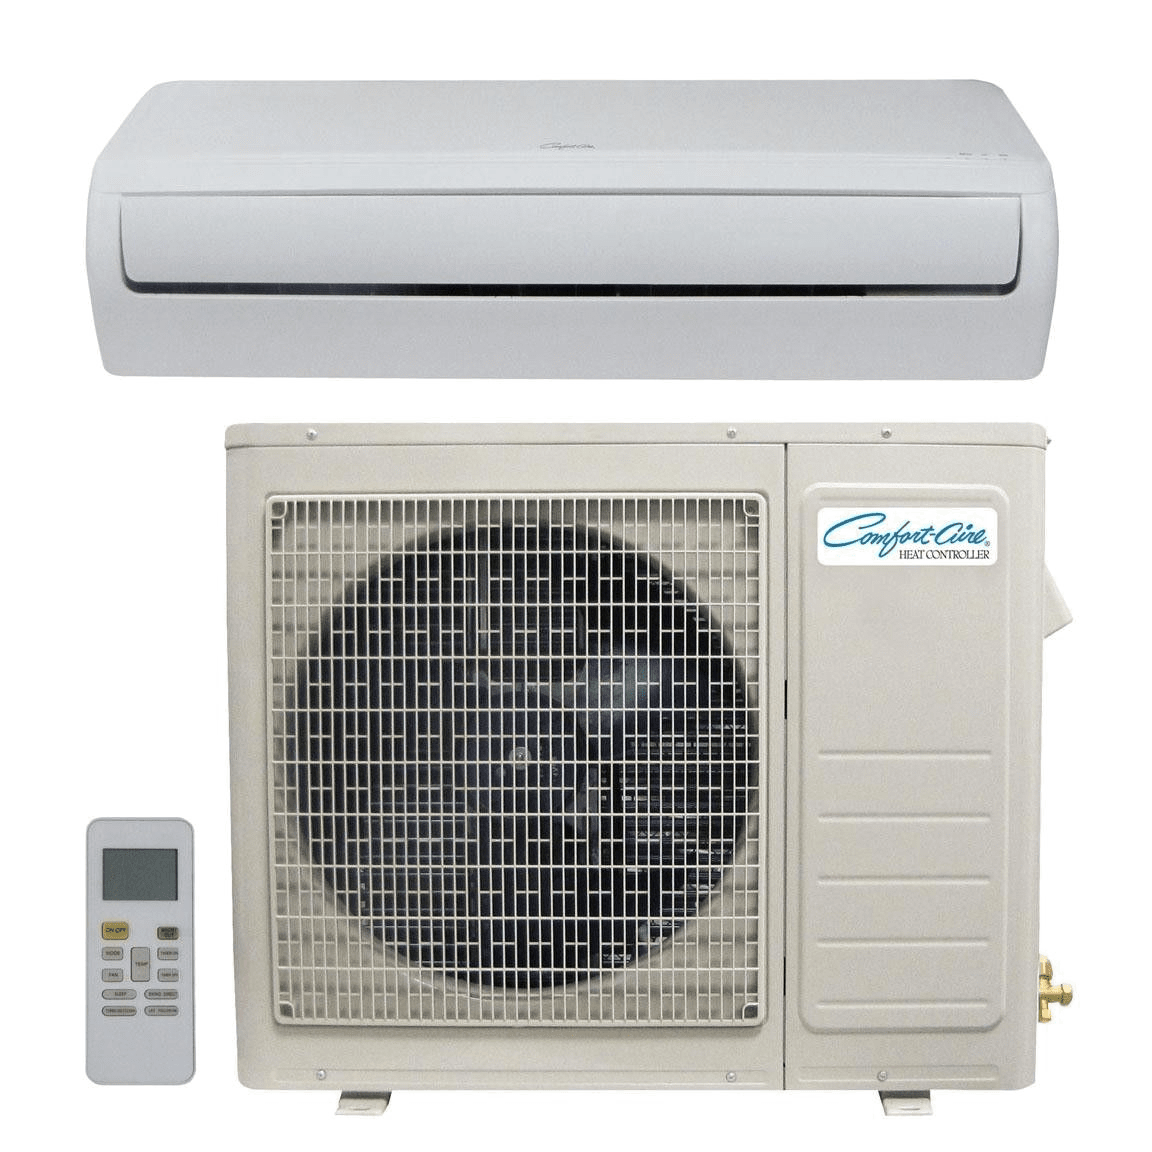 Comfort-Aire DV Series 9,000 BTU Mini Split System co3774k